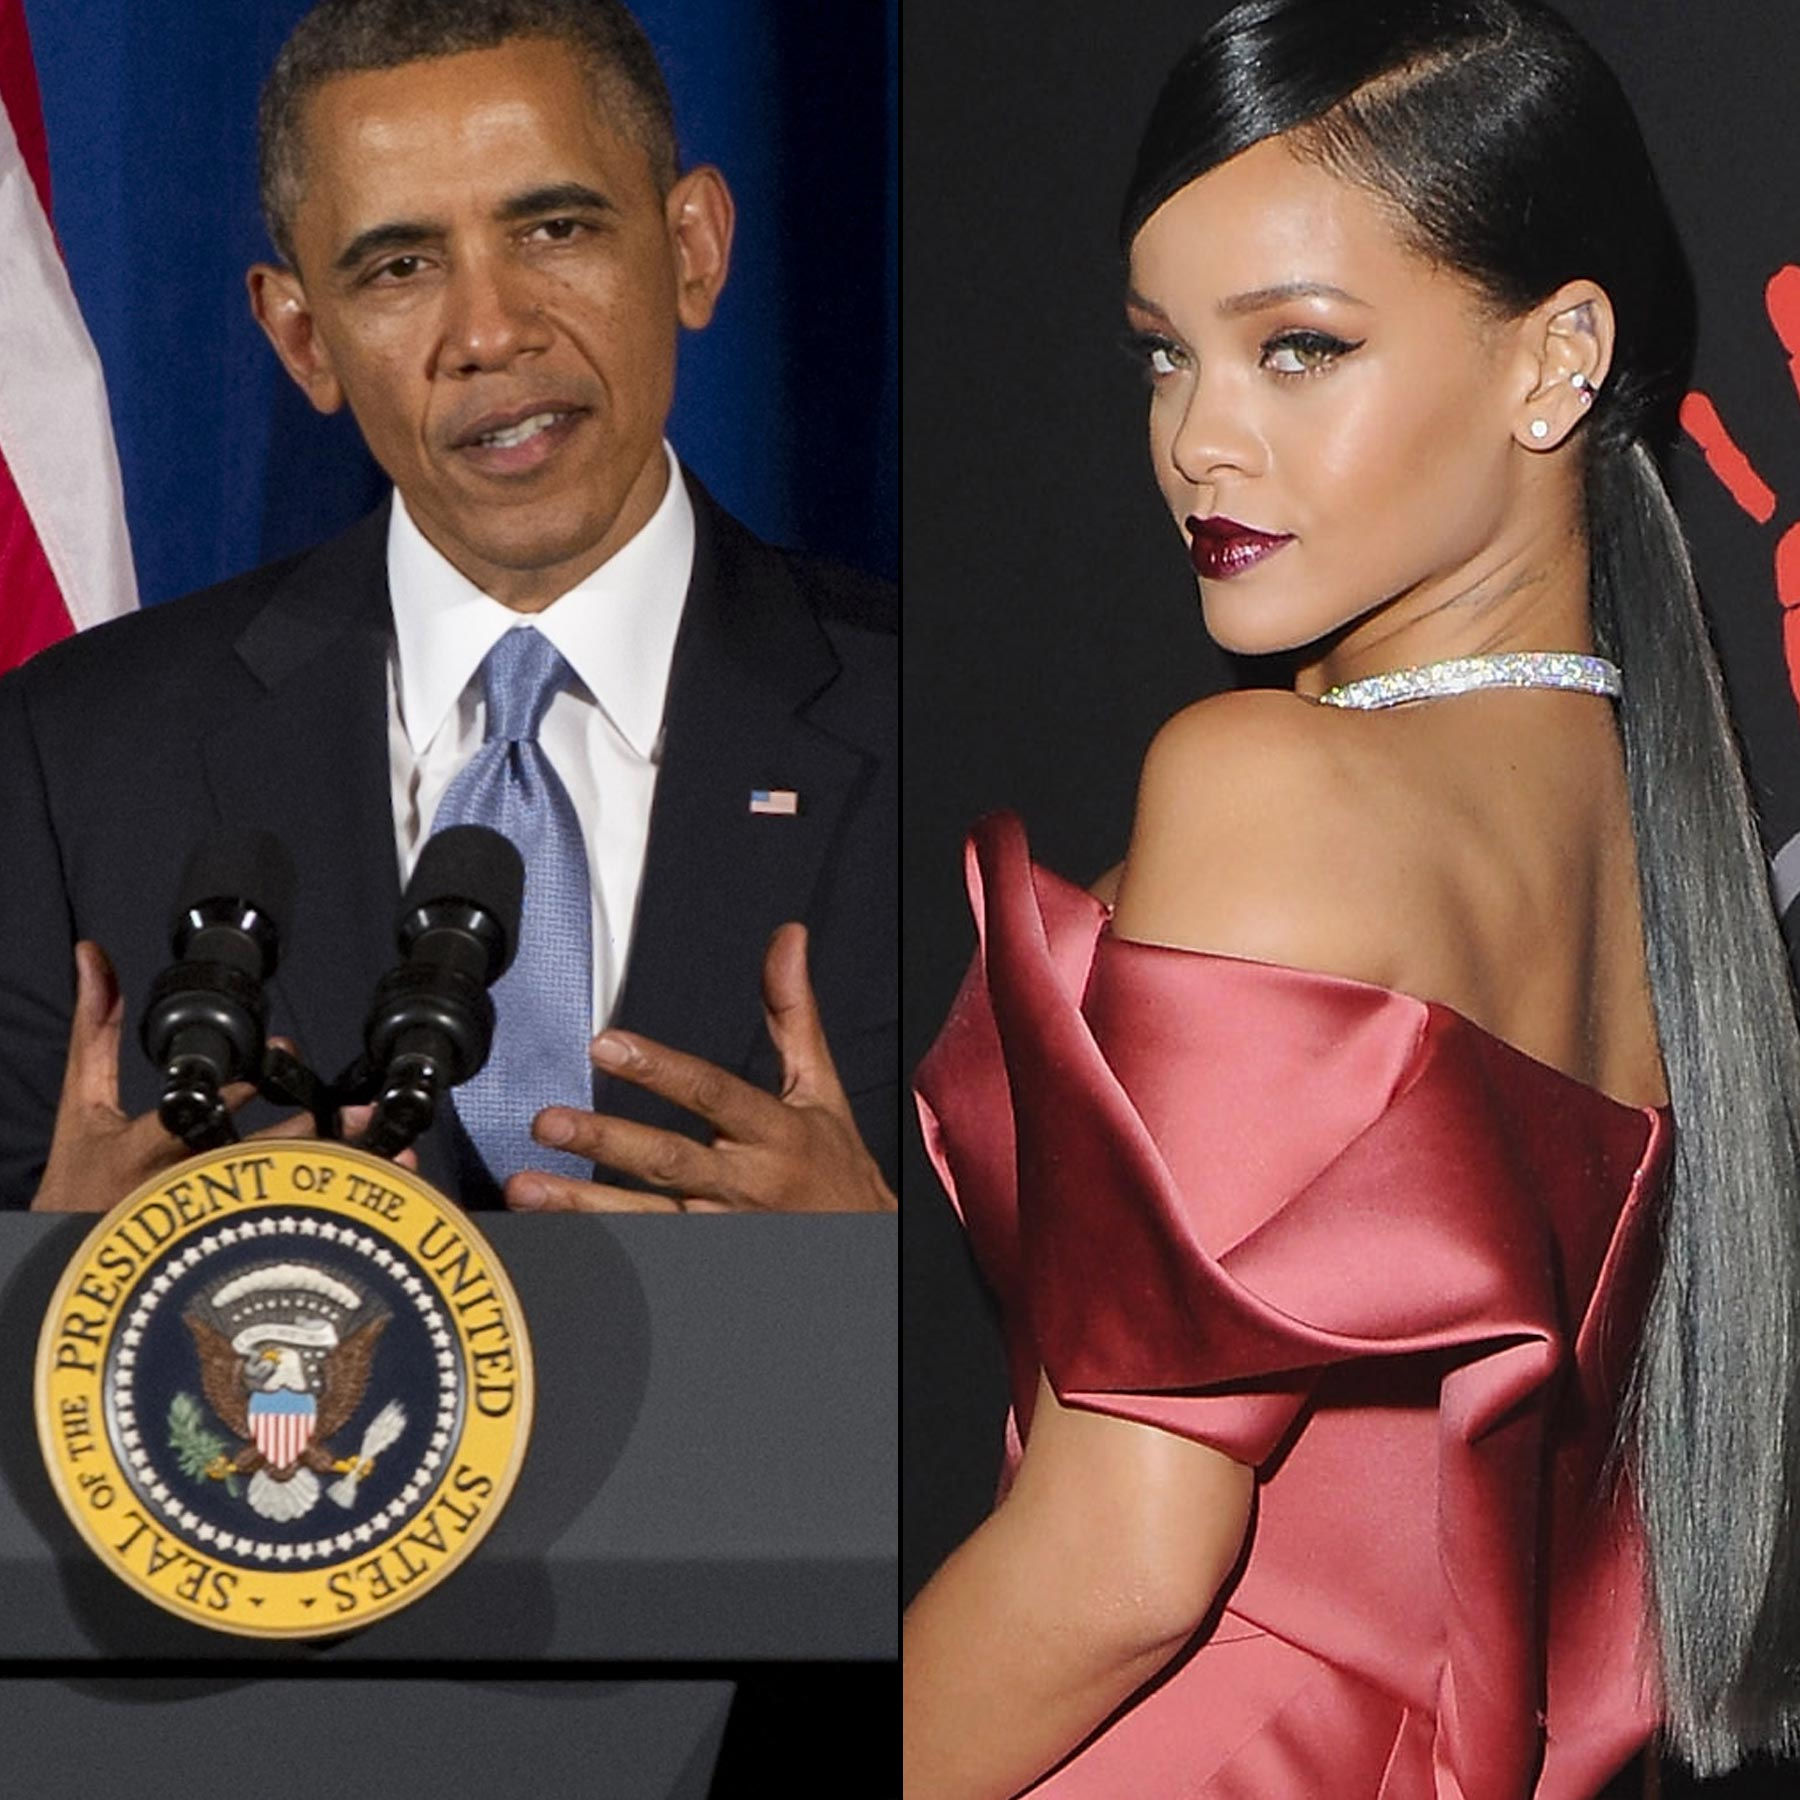 Barack Obama Says He Totally Knows All The Lyrics To Rihanna's 'Work' And Would Have No Problem Singing The 'Jam!'